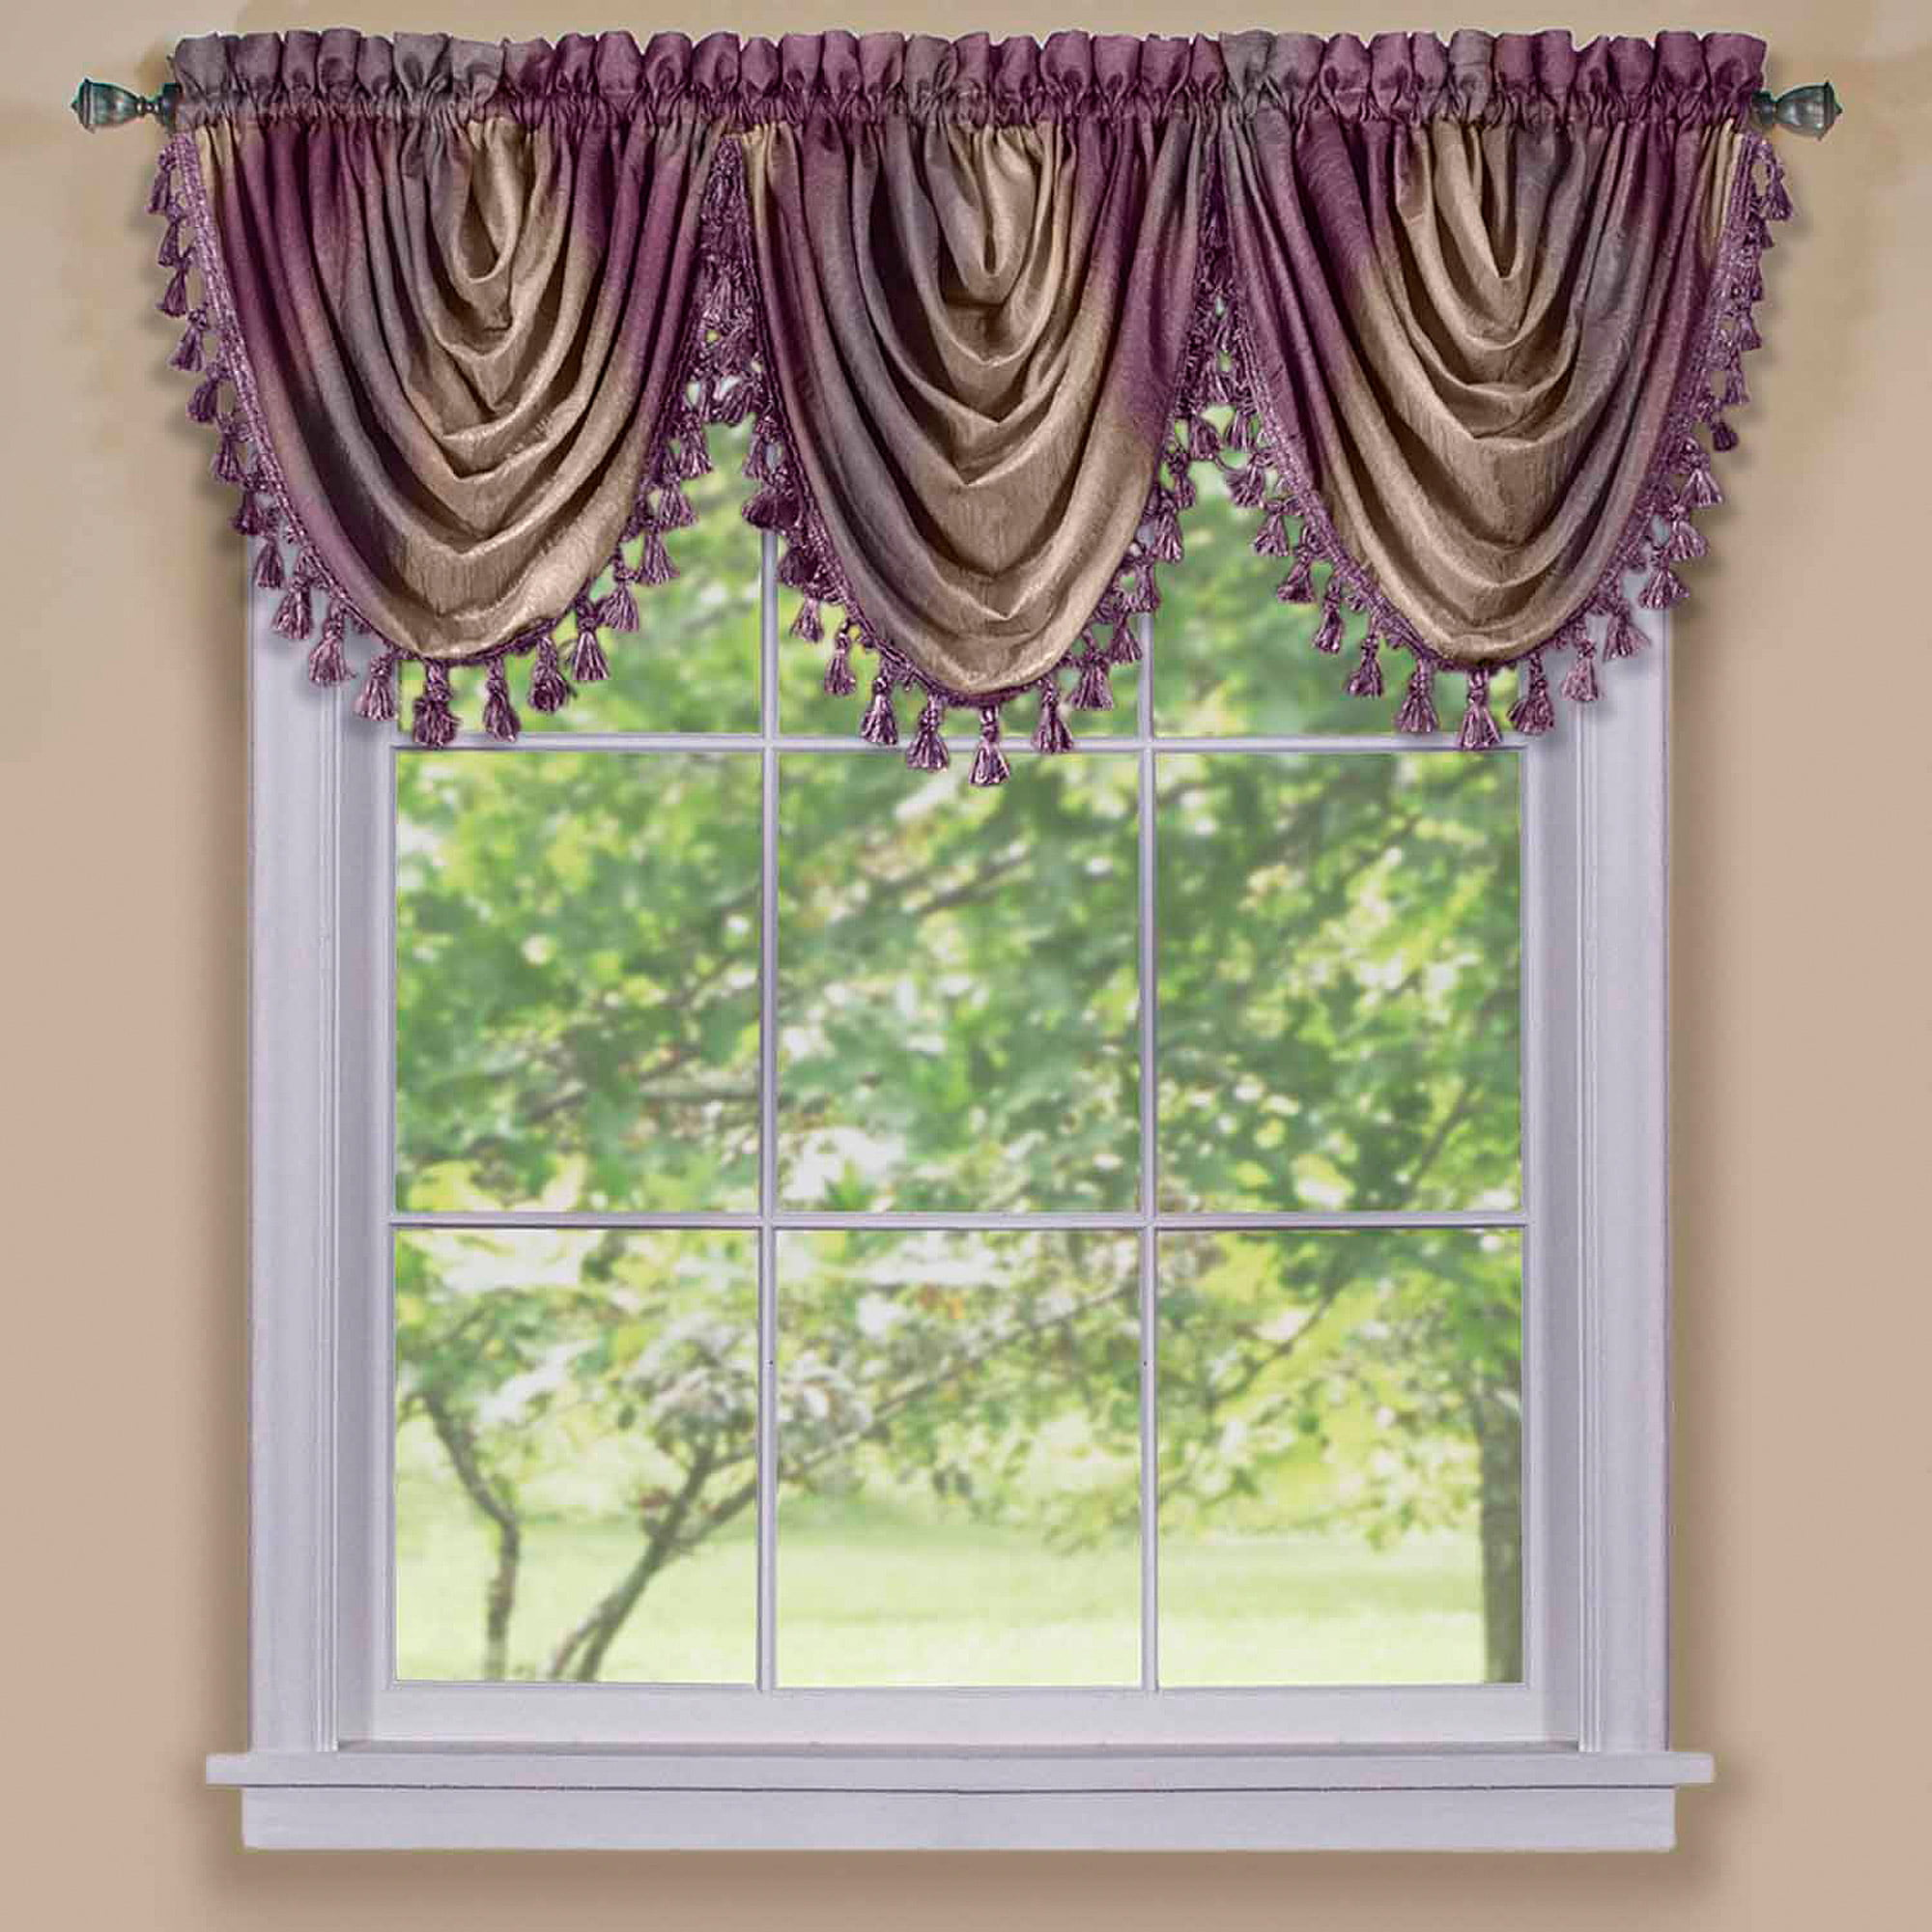 curtains valances blankets throws to make ideas pinch swag how valance waterfall